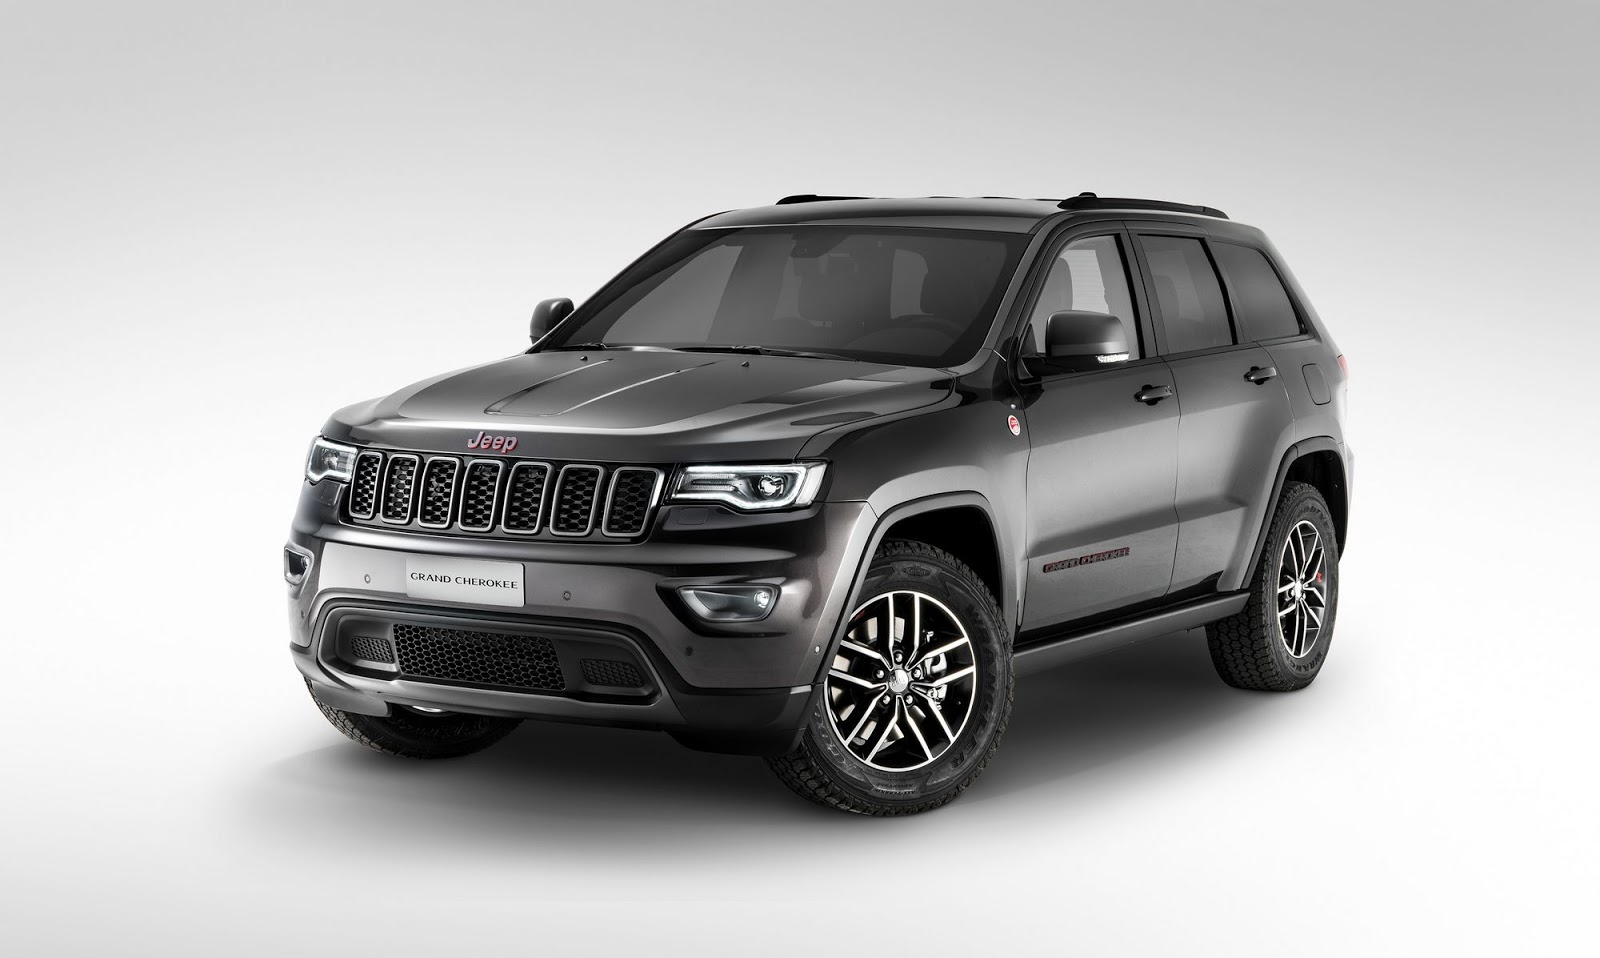 2017 grand cherokee headlines jeep paris auto show line up. Black Bedroom Furniture Sets. Home Design Ideas